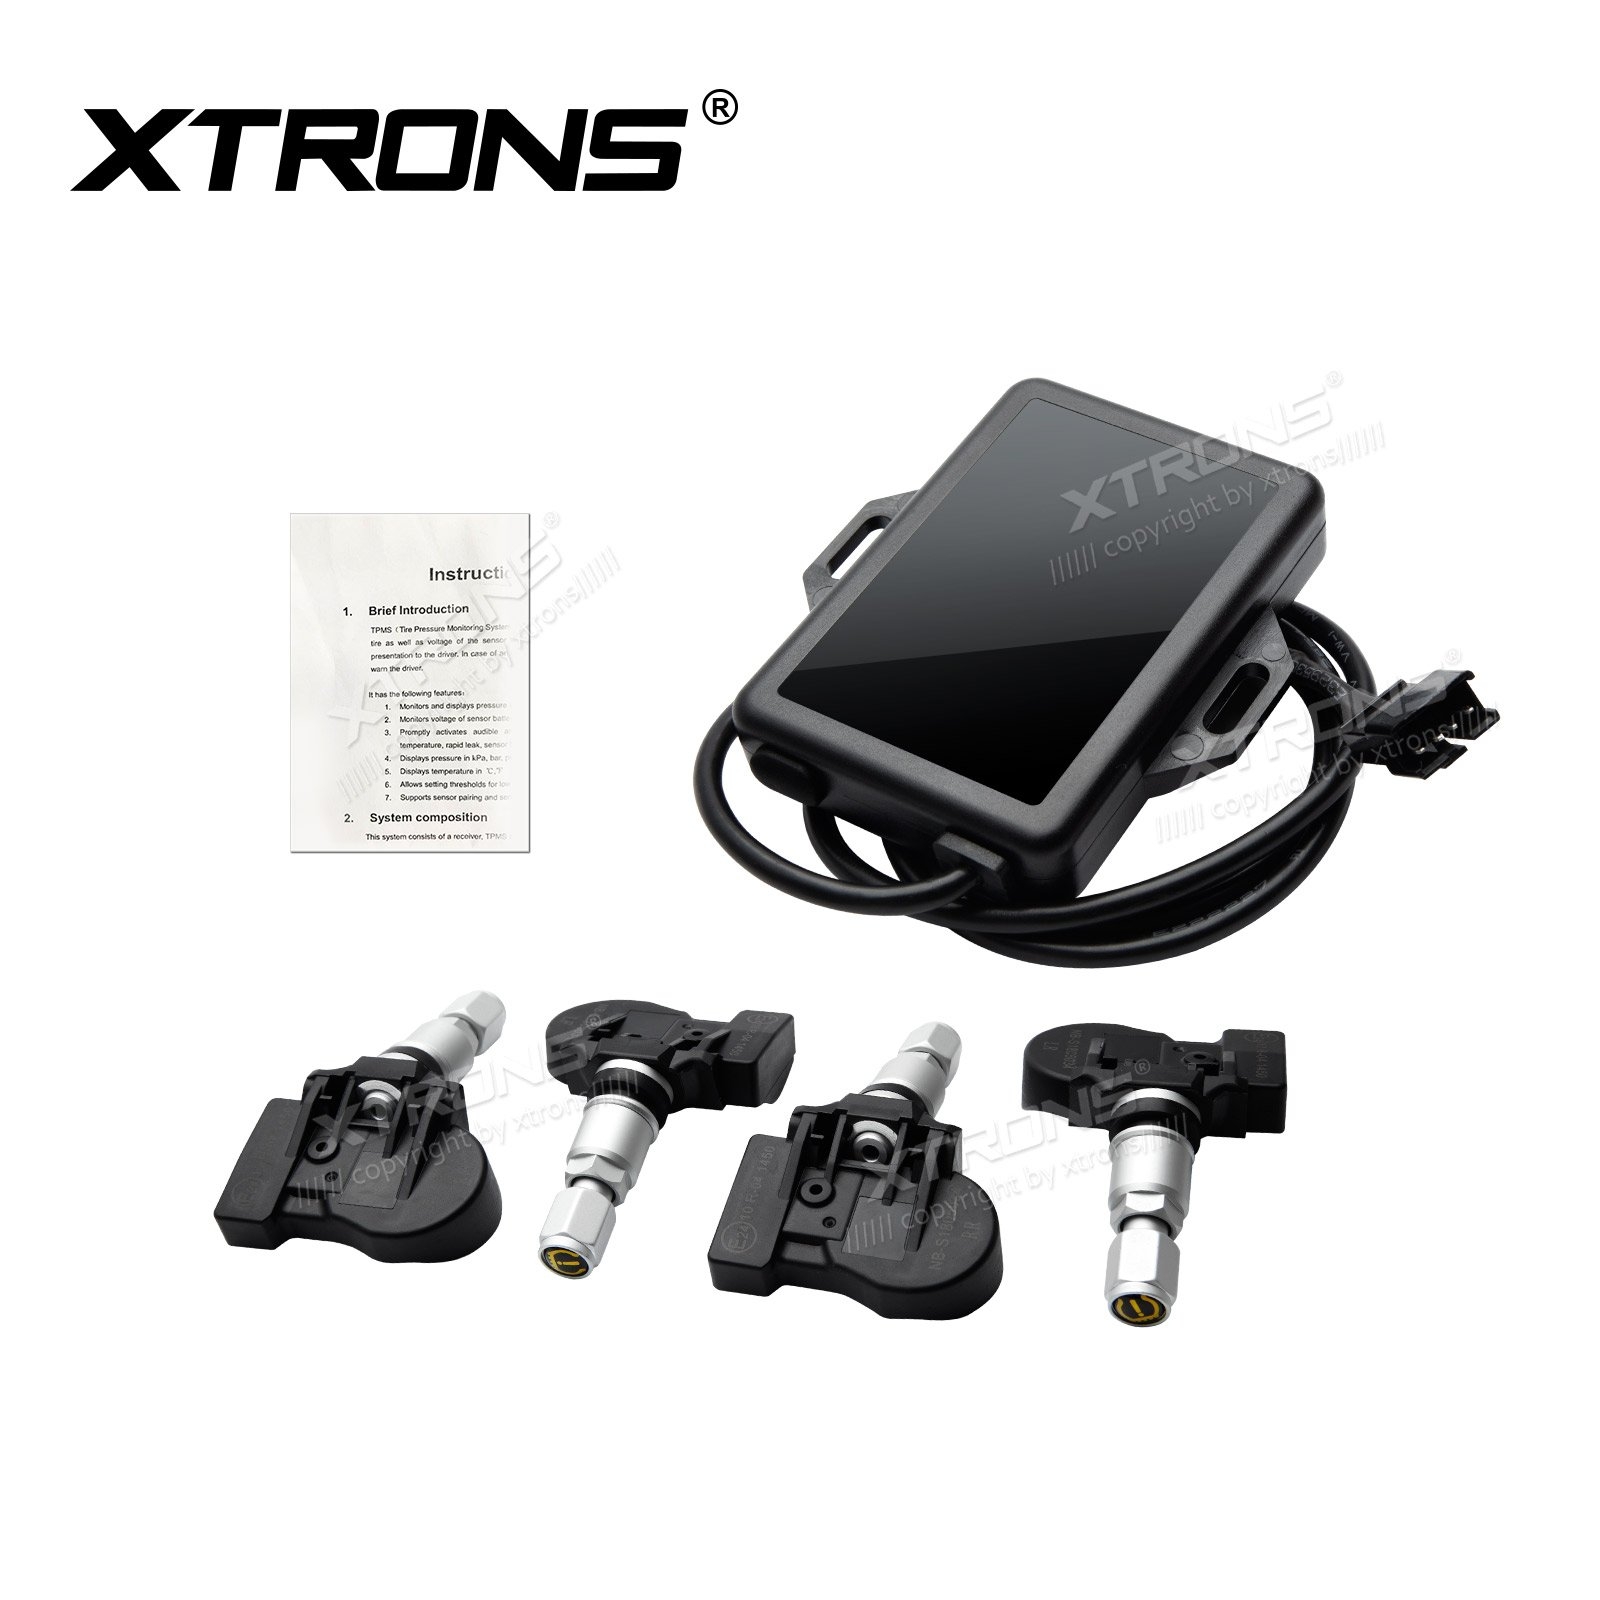 XTRONS Car Auto TPMS Tire Pressure Monitoring System for Android Units TE706PL TE103AP TR100